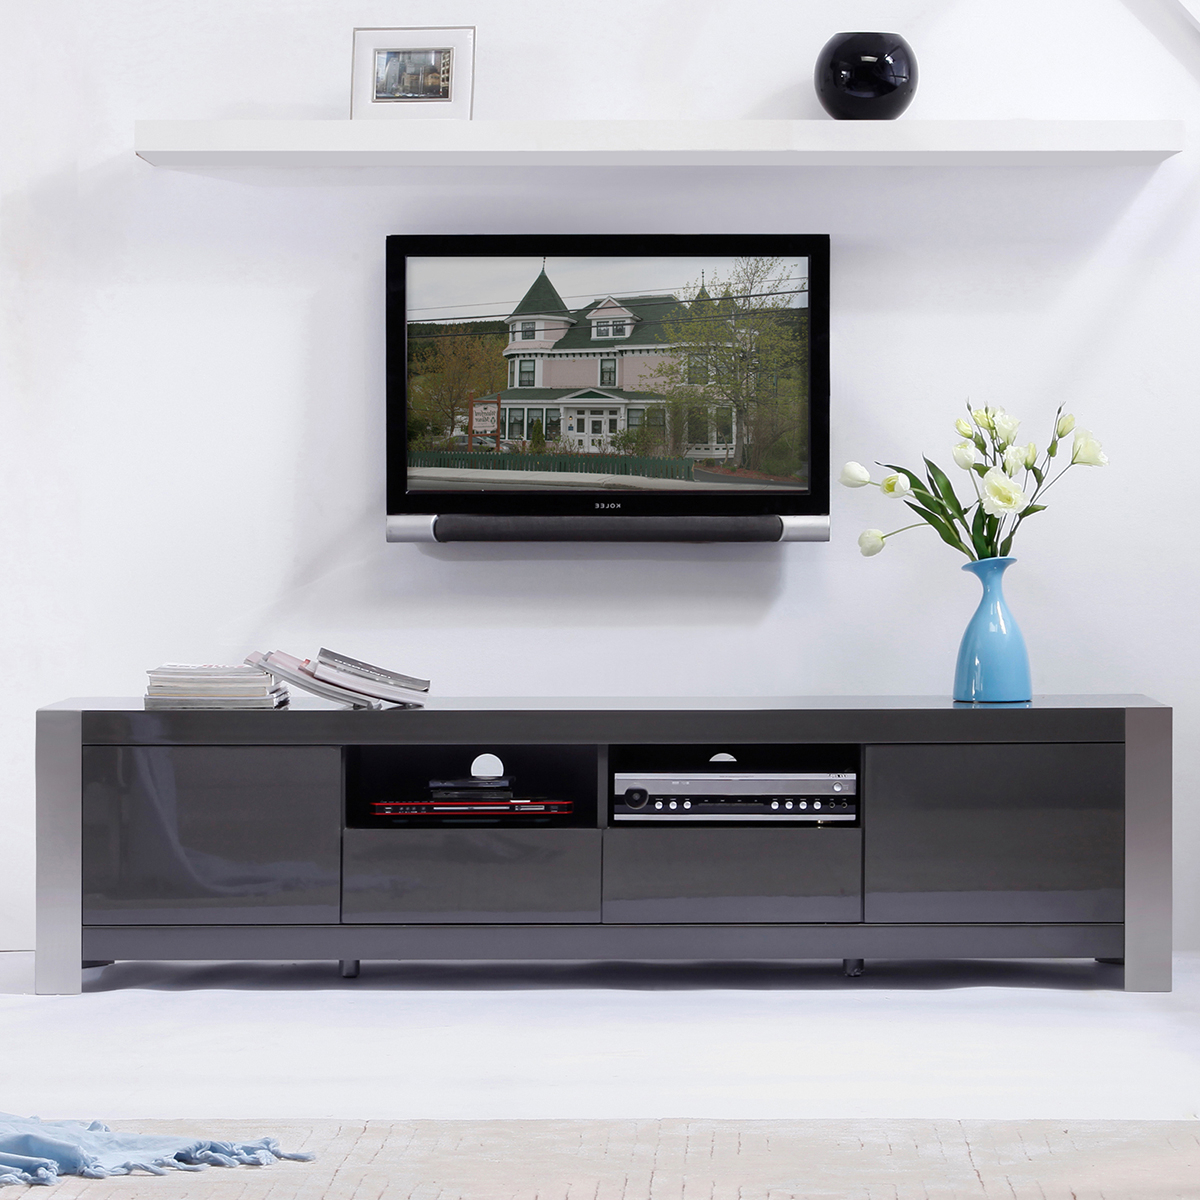 Red Gloss Tv Stands Regarding Best And Newest Tv Television Stands 71 & Wider (View 13 of 20)